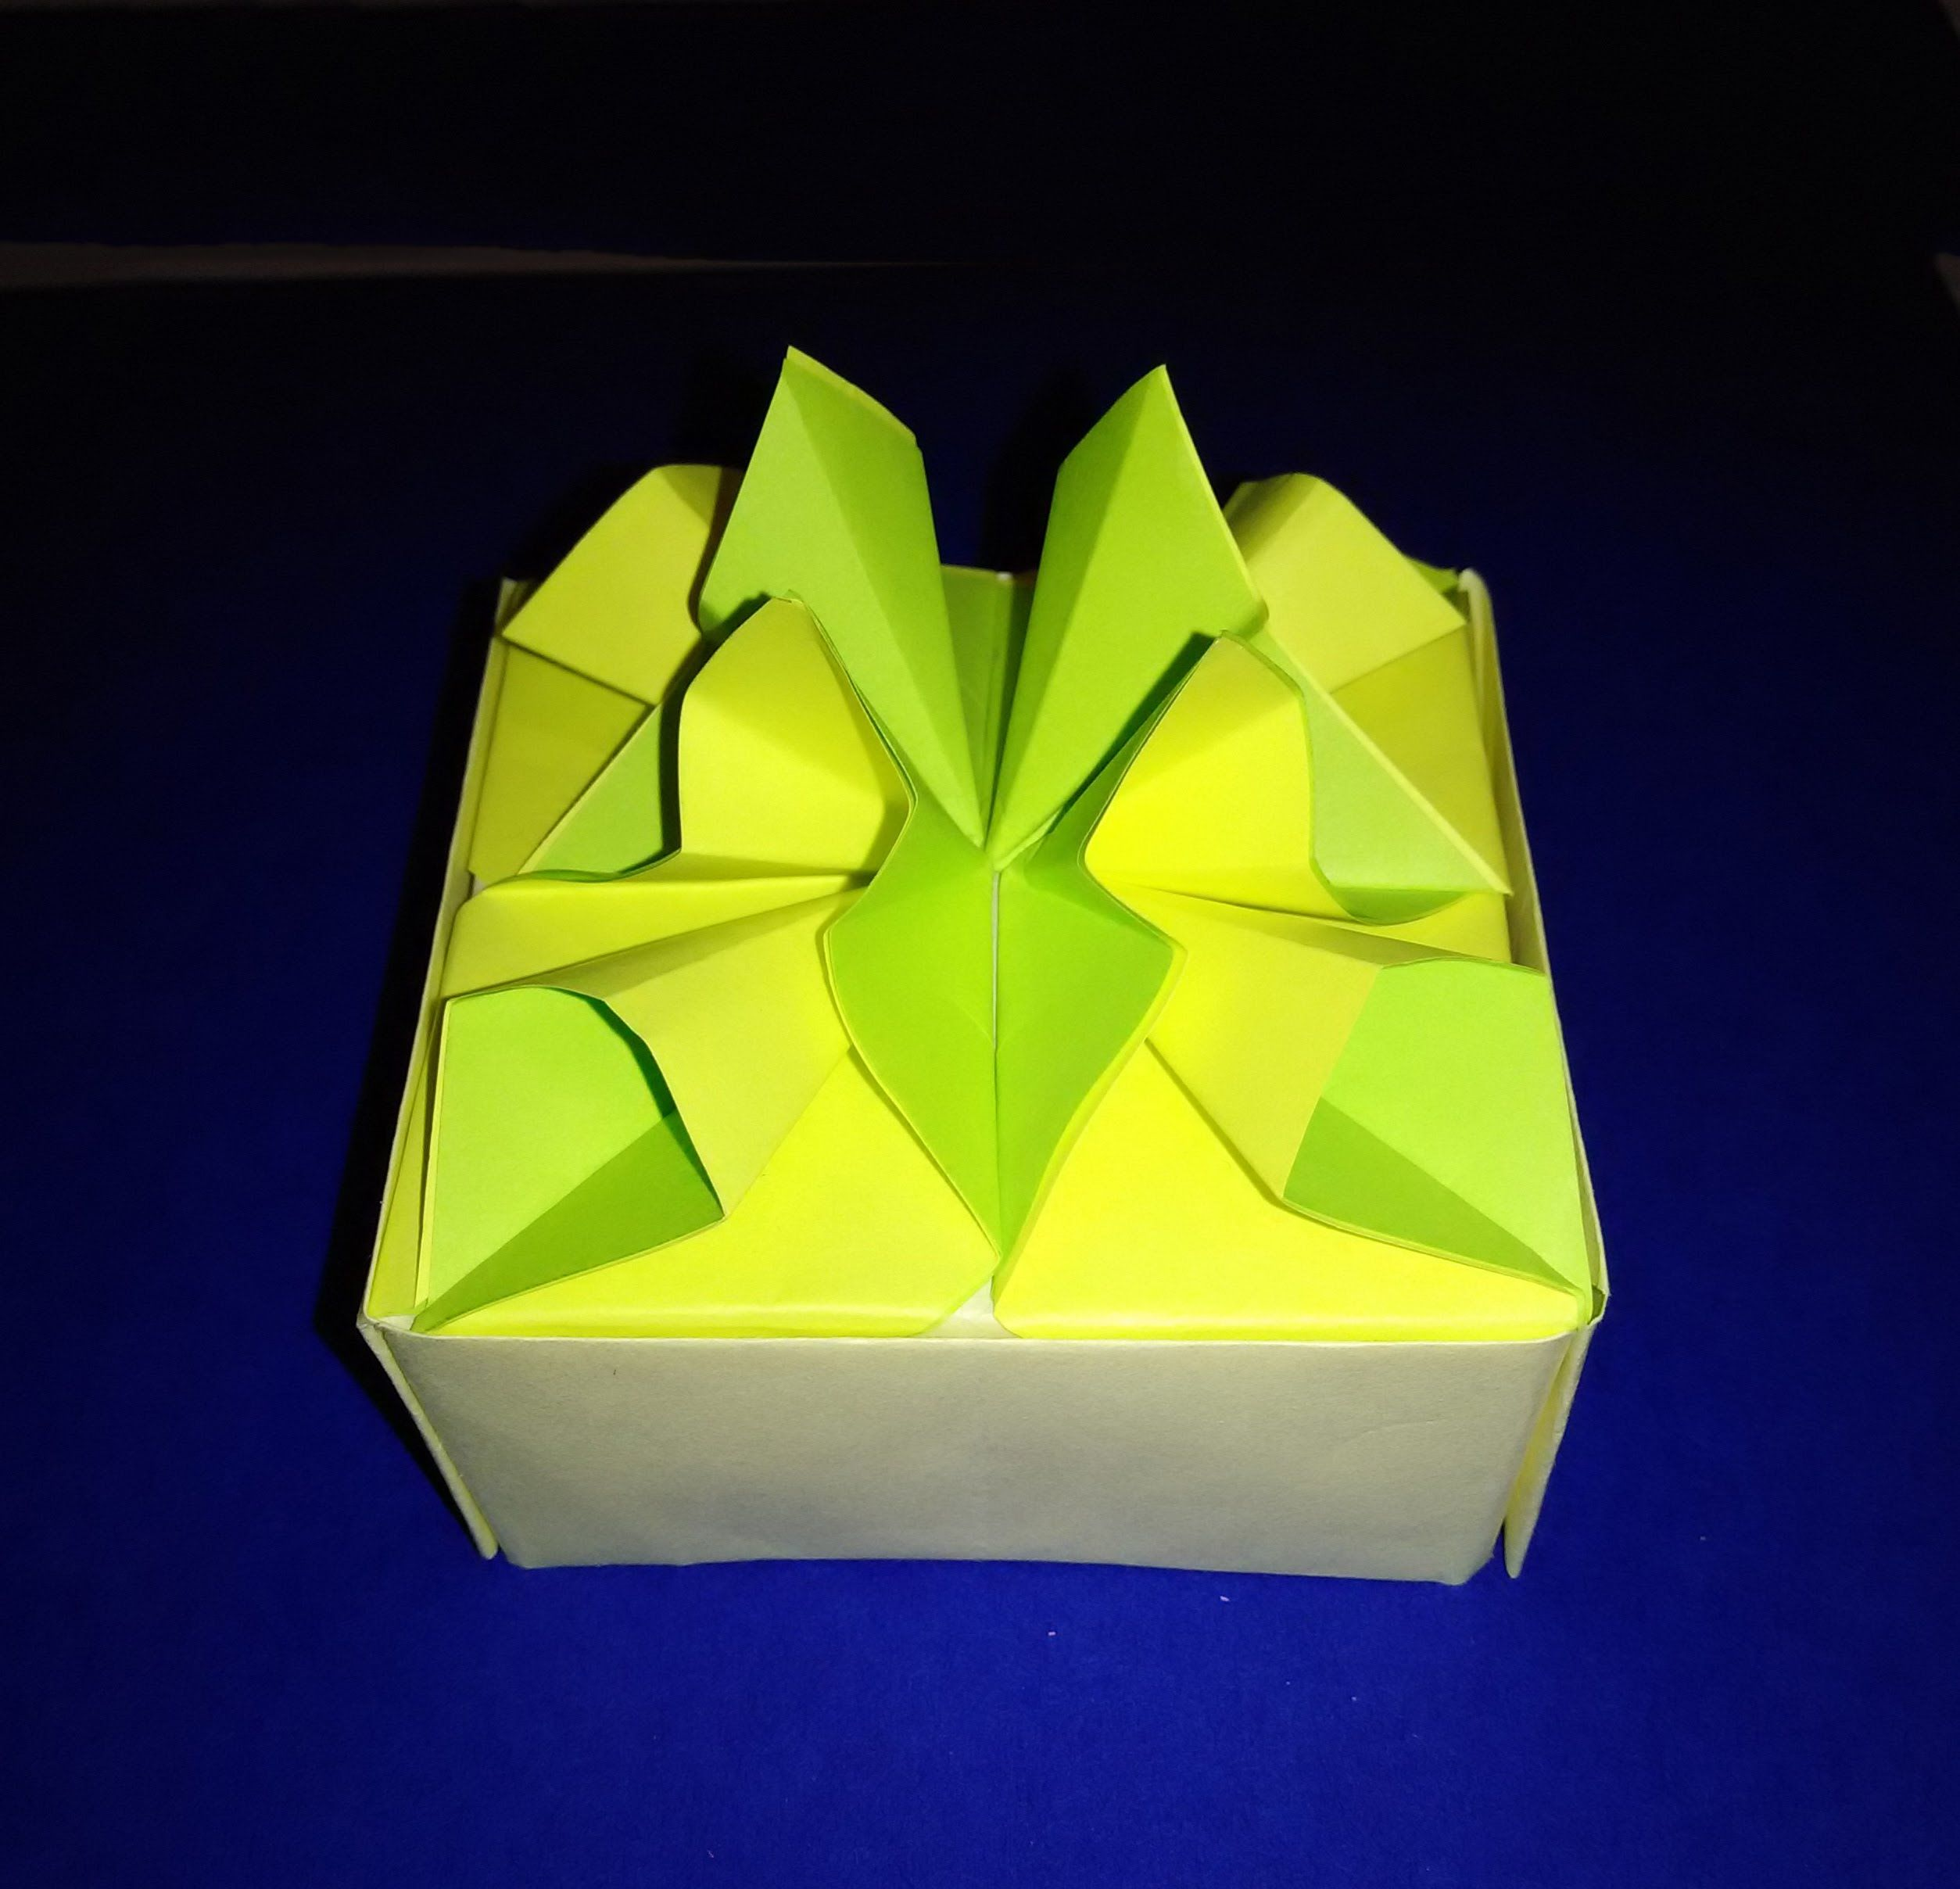 Origami Flower Gift Box Easy And Awesome Origami Box Ideas For